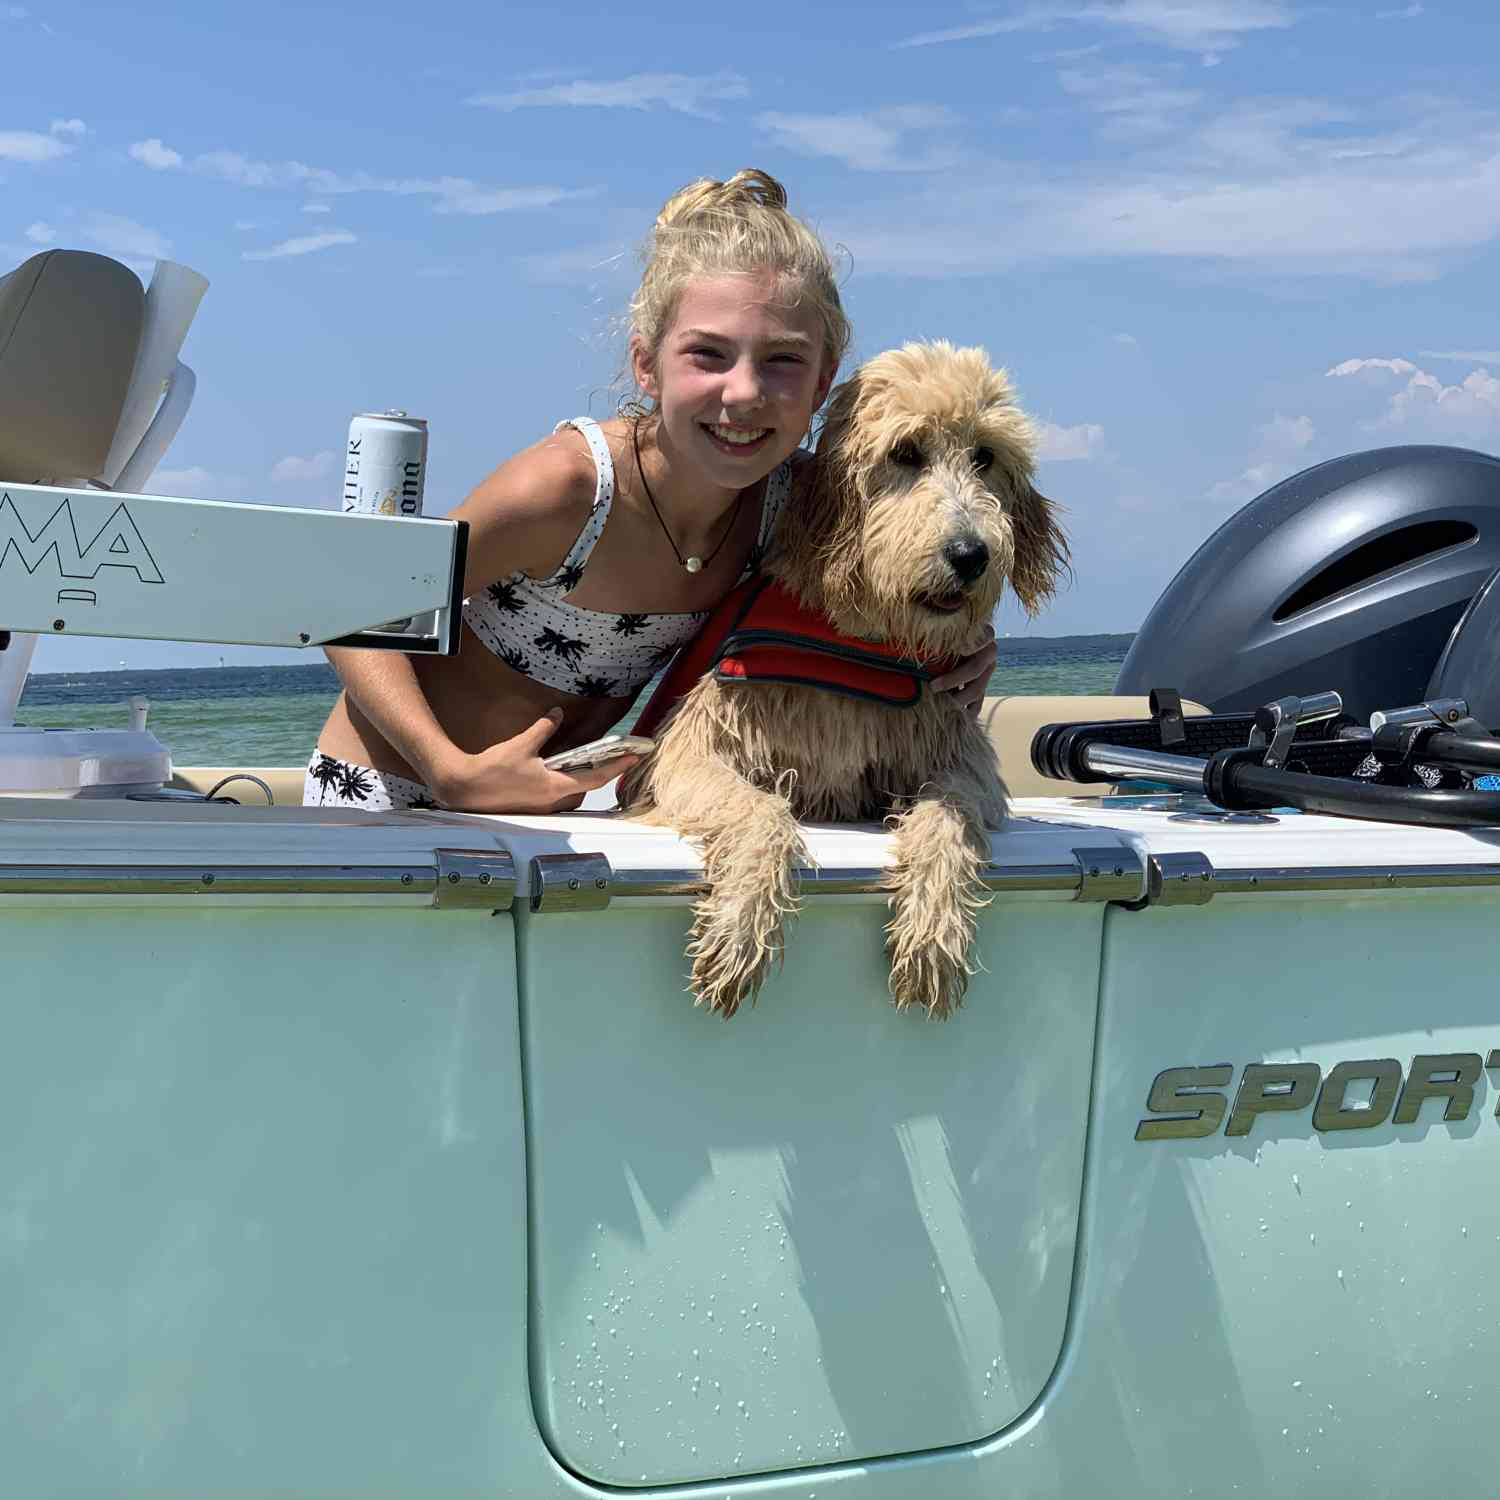 Title: My Girls - On board their Sportsman Heritage 251 Center Console - Location: Destin Florida. Participating in the Photo Contest #SportsmanAugust2019